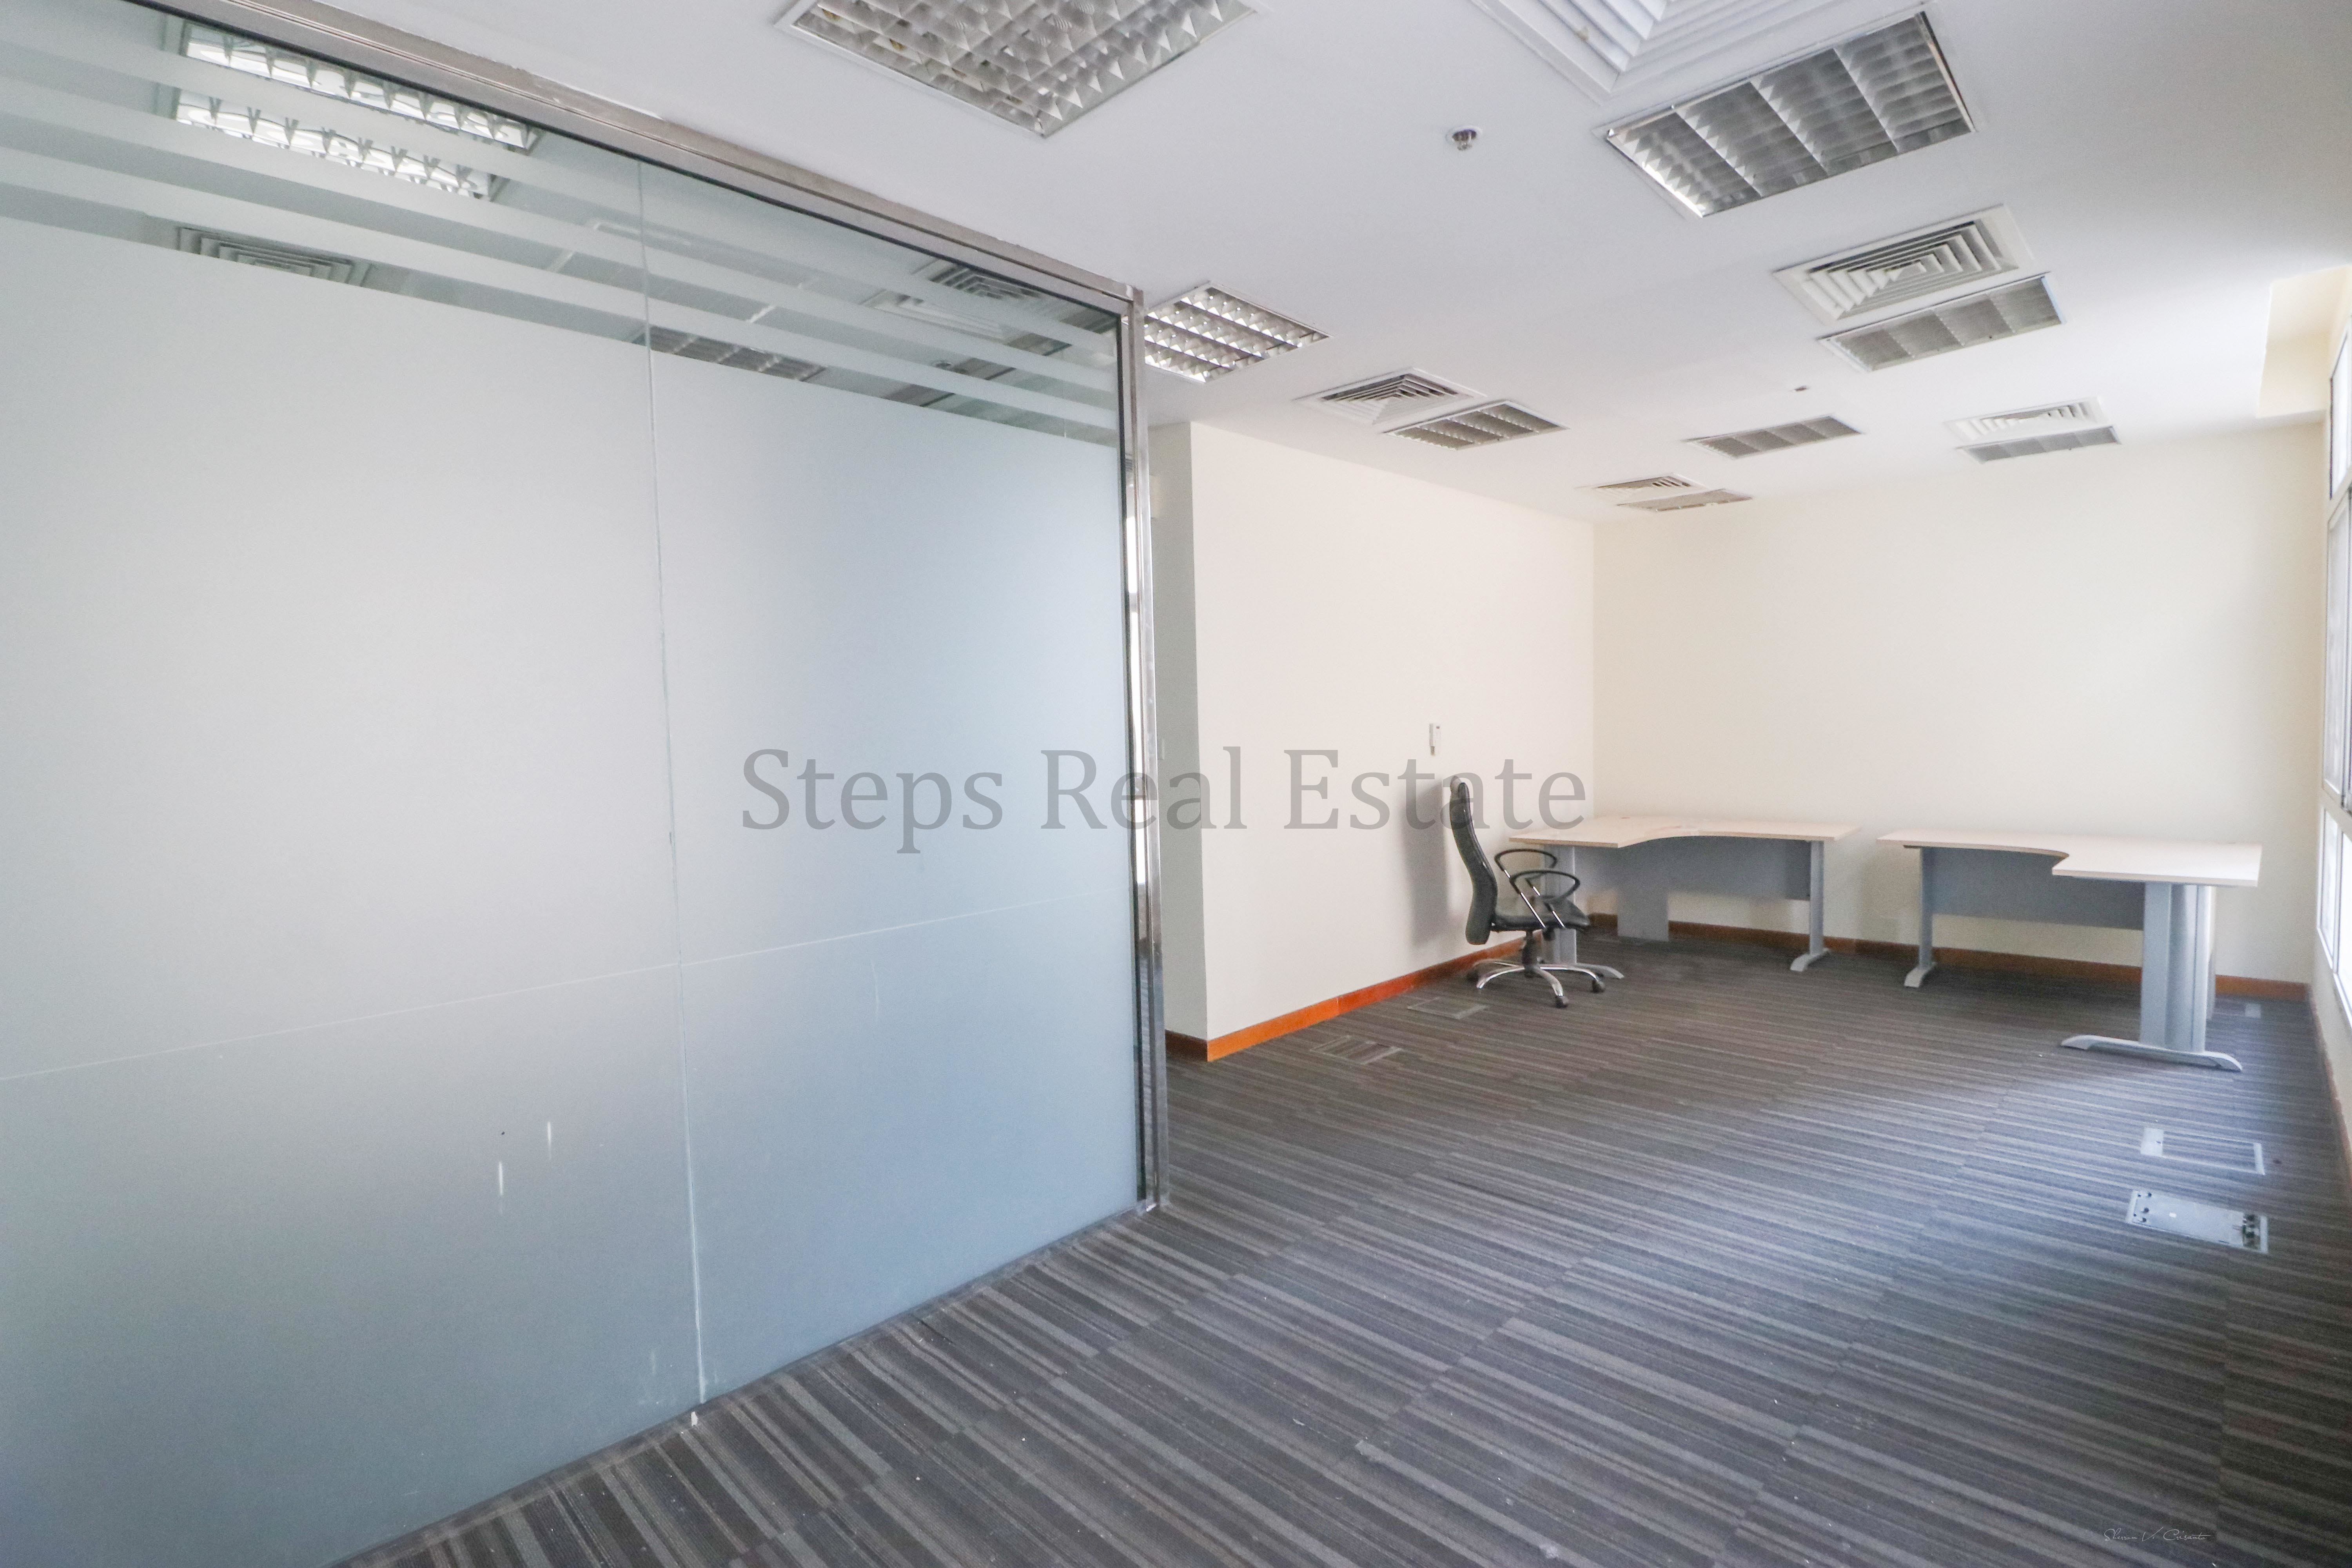 For Rent Office Space at C-Ring Road | Qatar Living